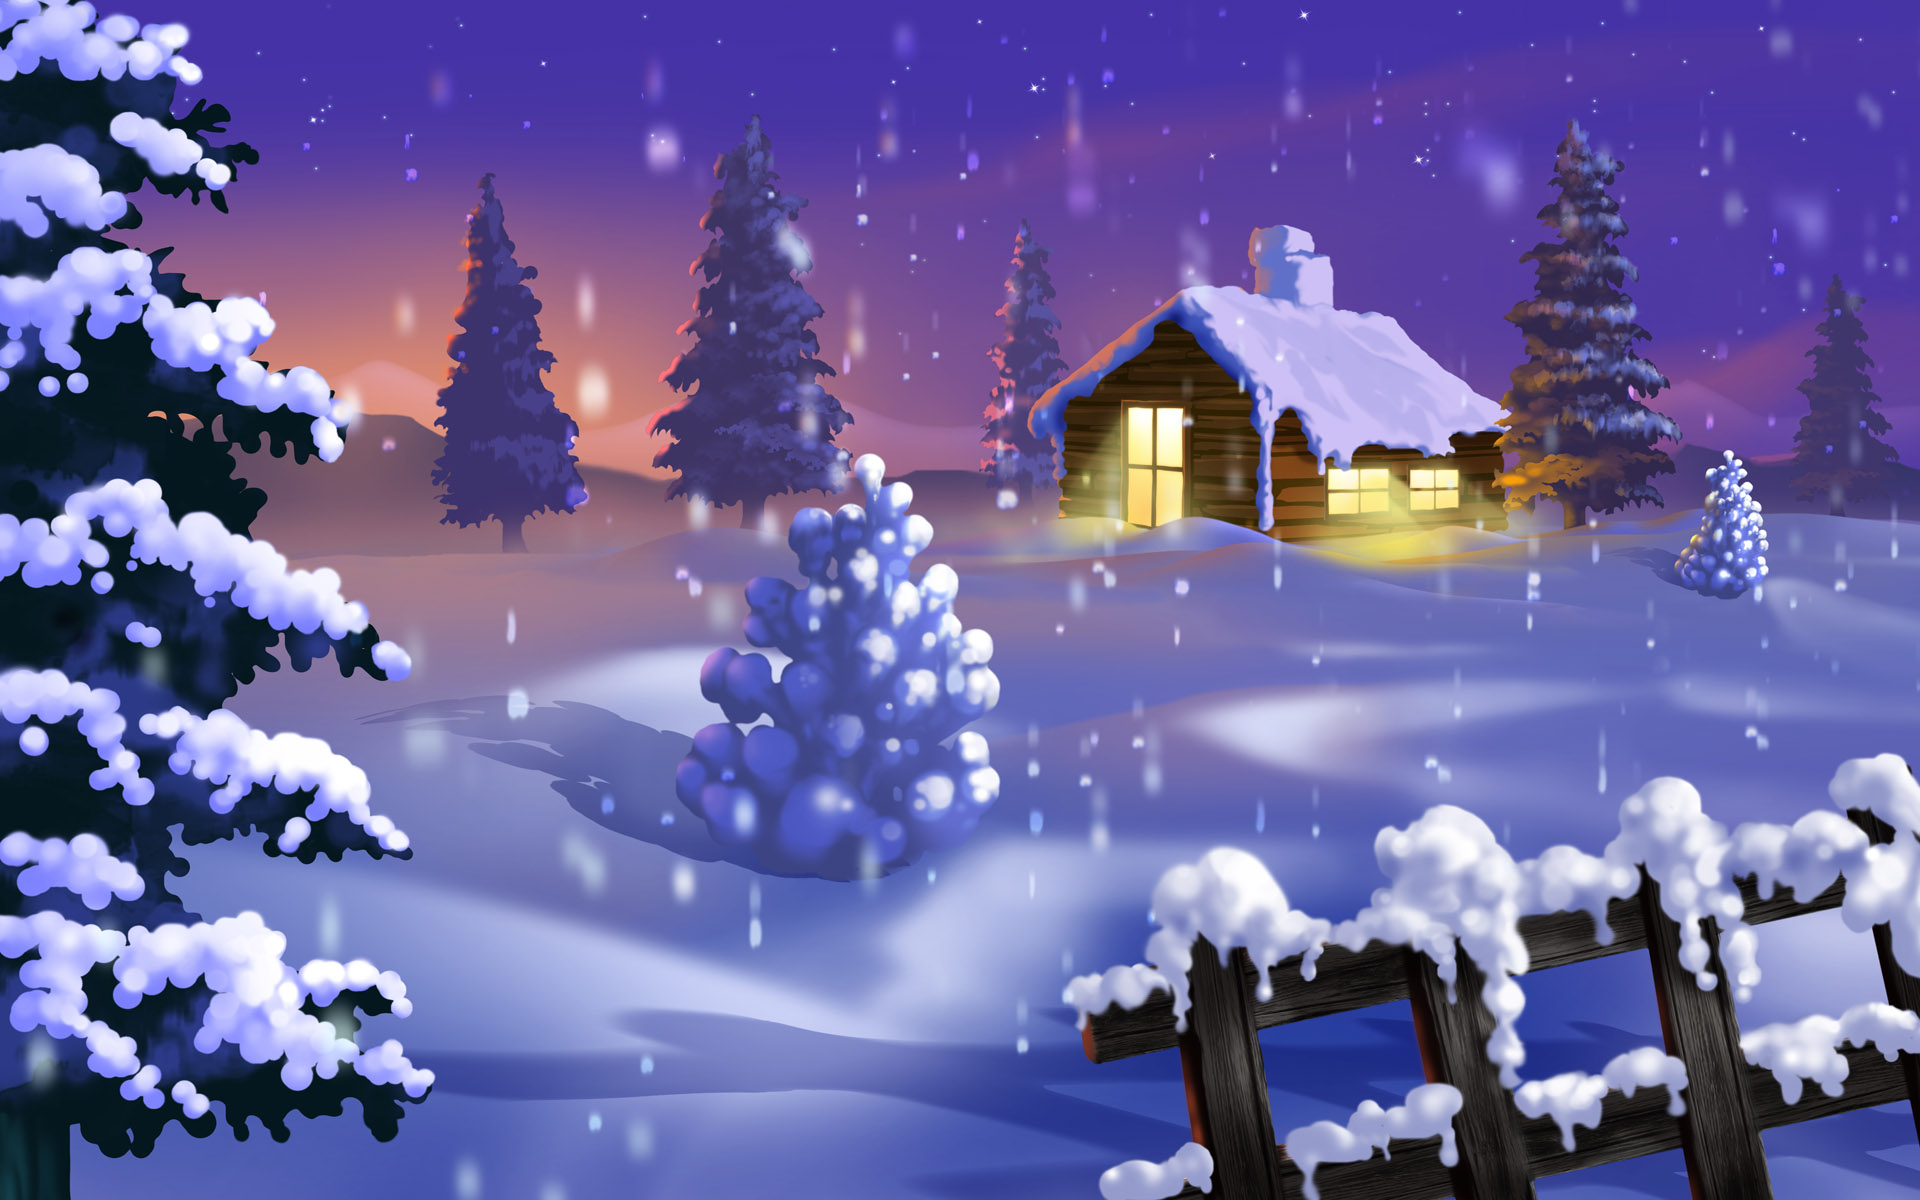 desktop wallpaper winter christmas   wwwwallpapers in hdcom 1920x1200